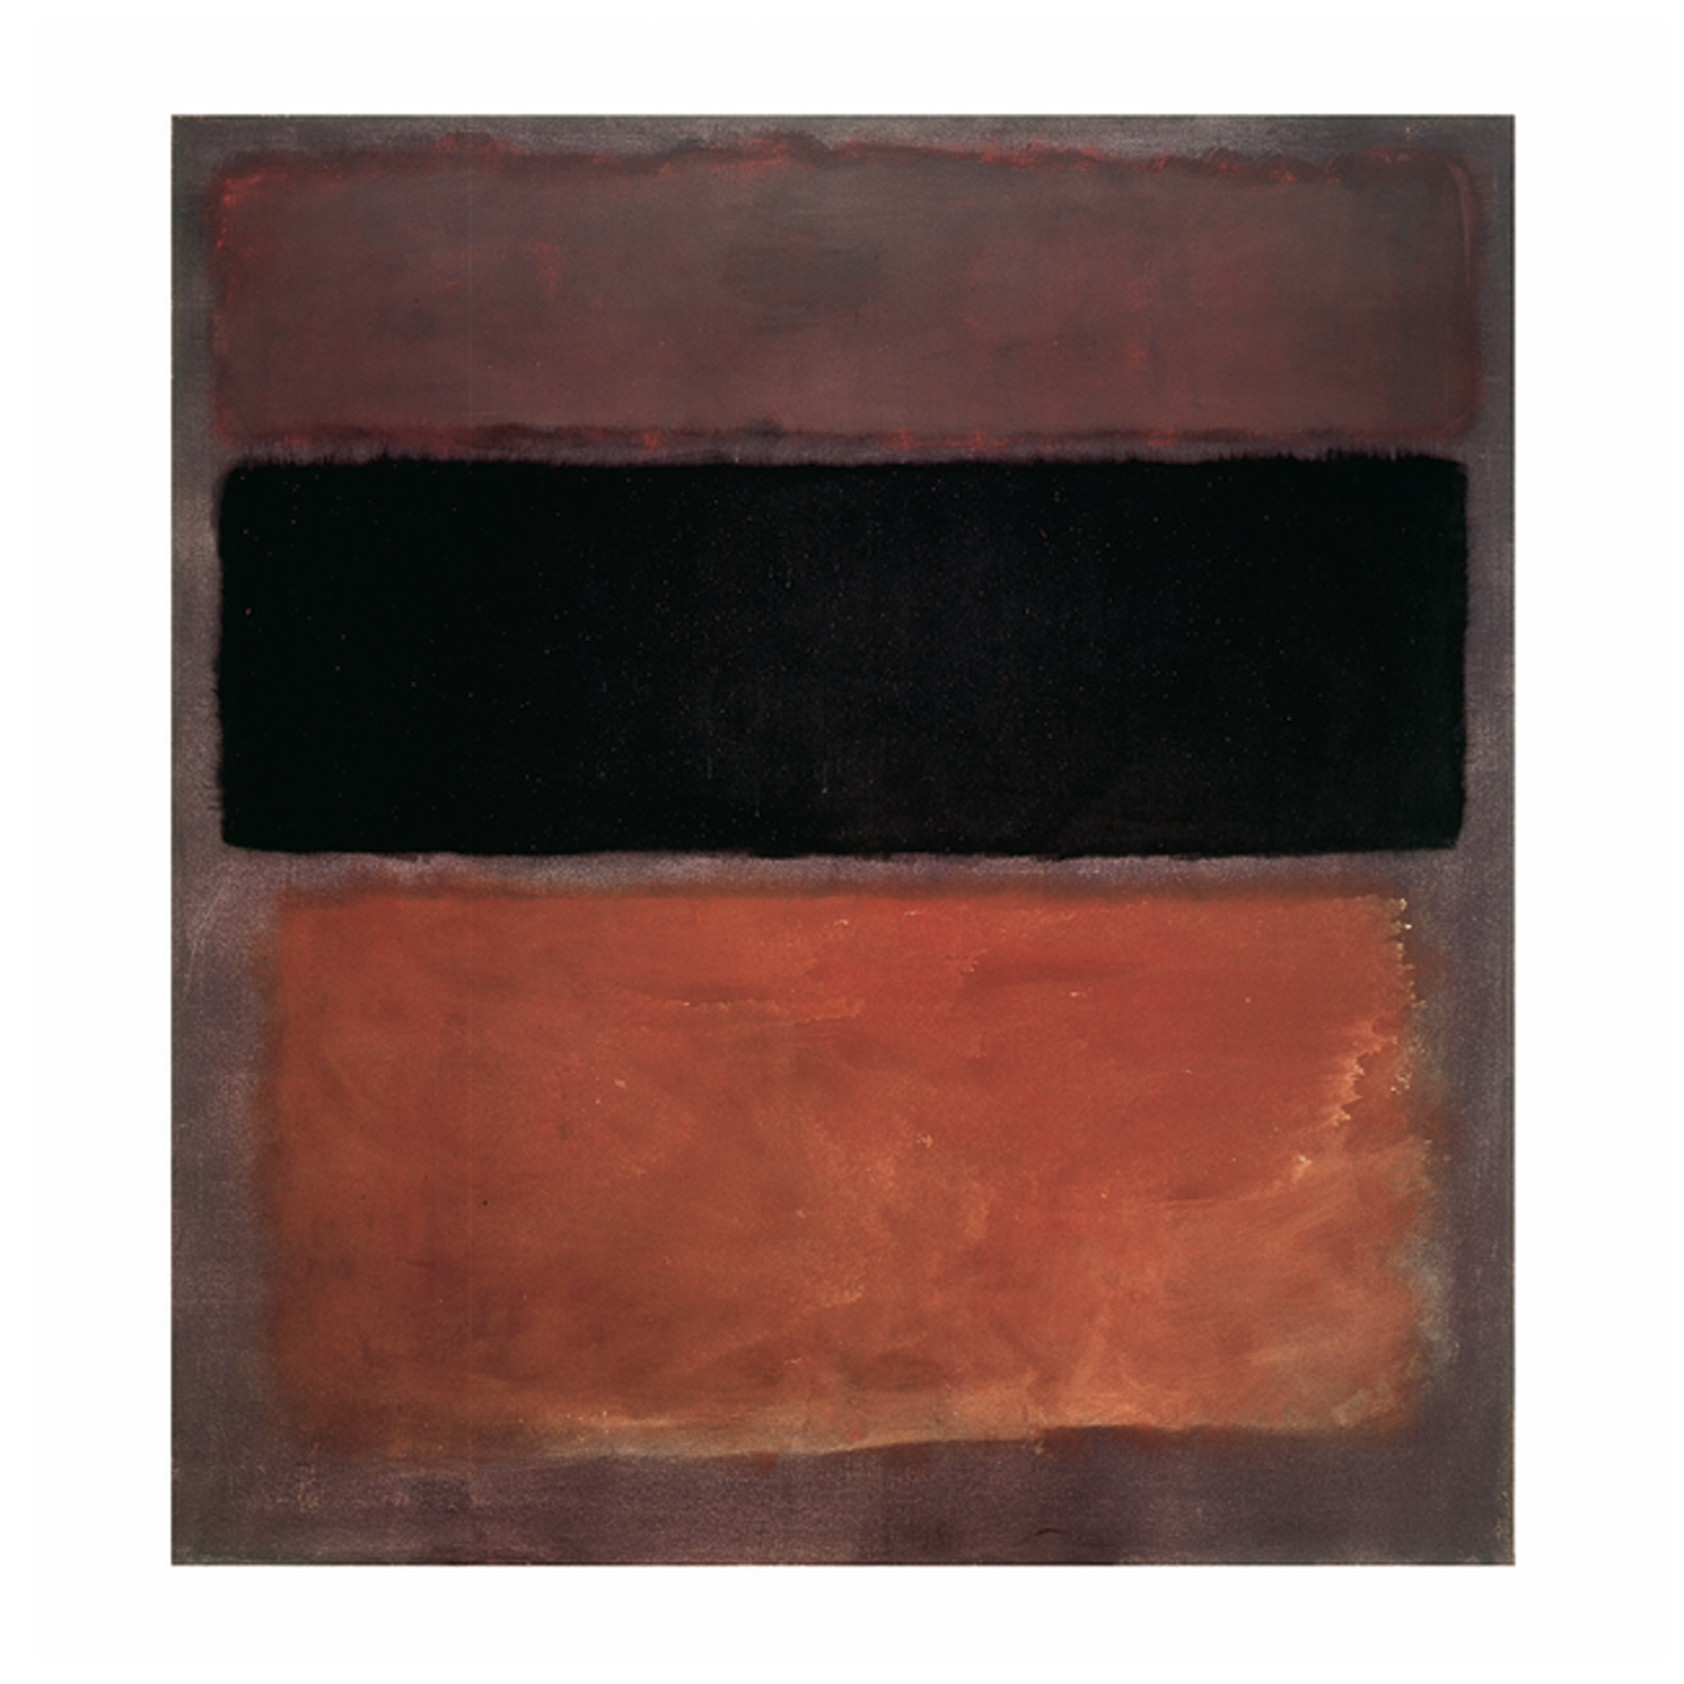 N° 10, brown, black, sienna on dark wine, 1963